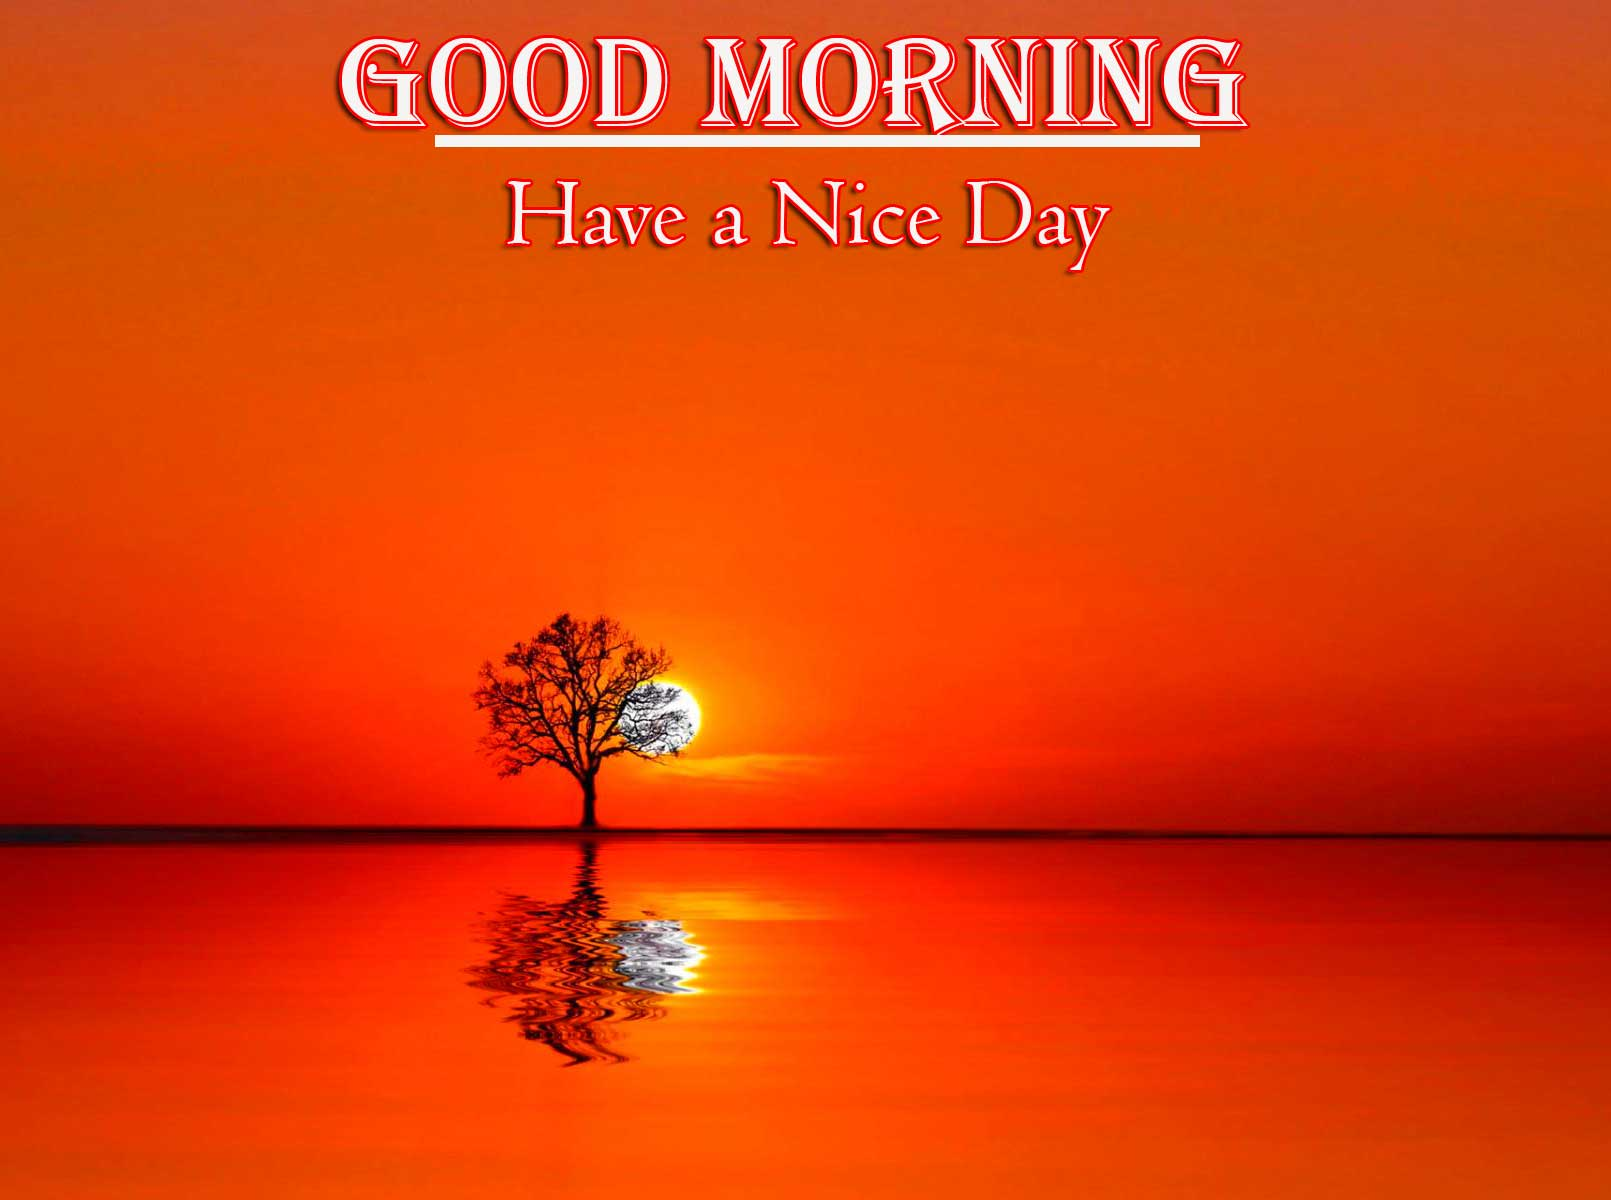 Good Morning Wishes With Sunrise pics Download Free